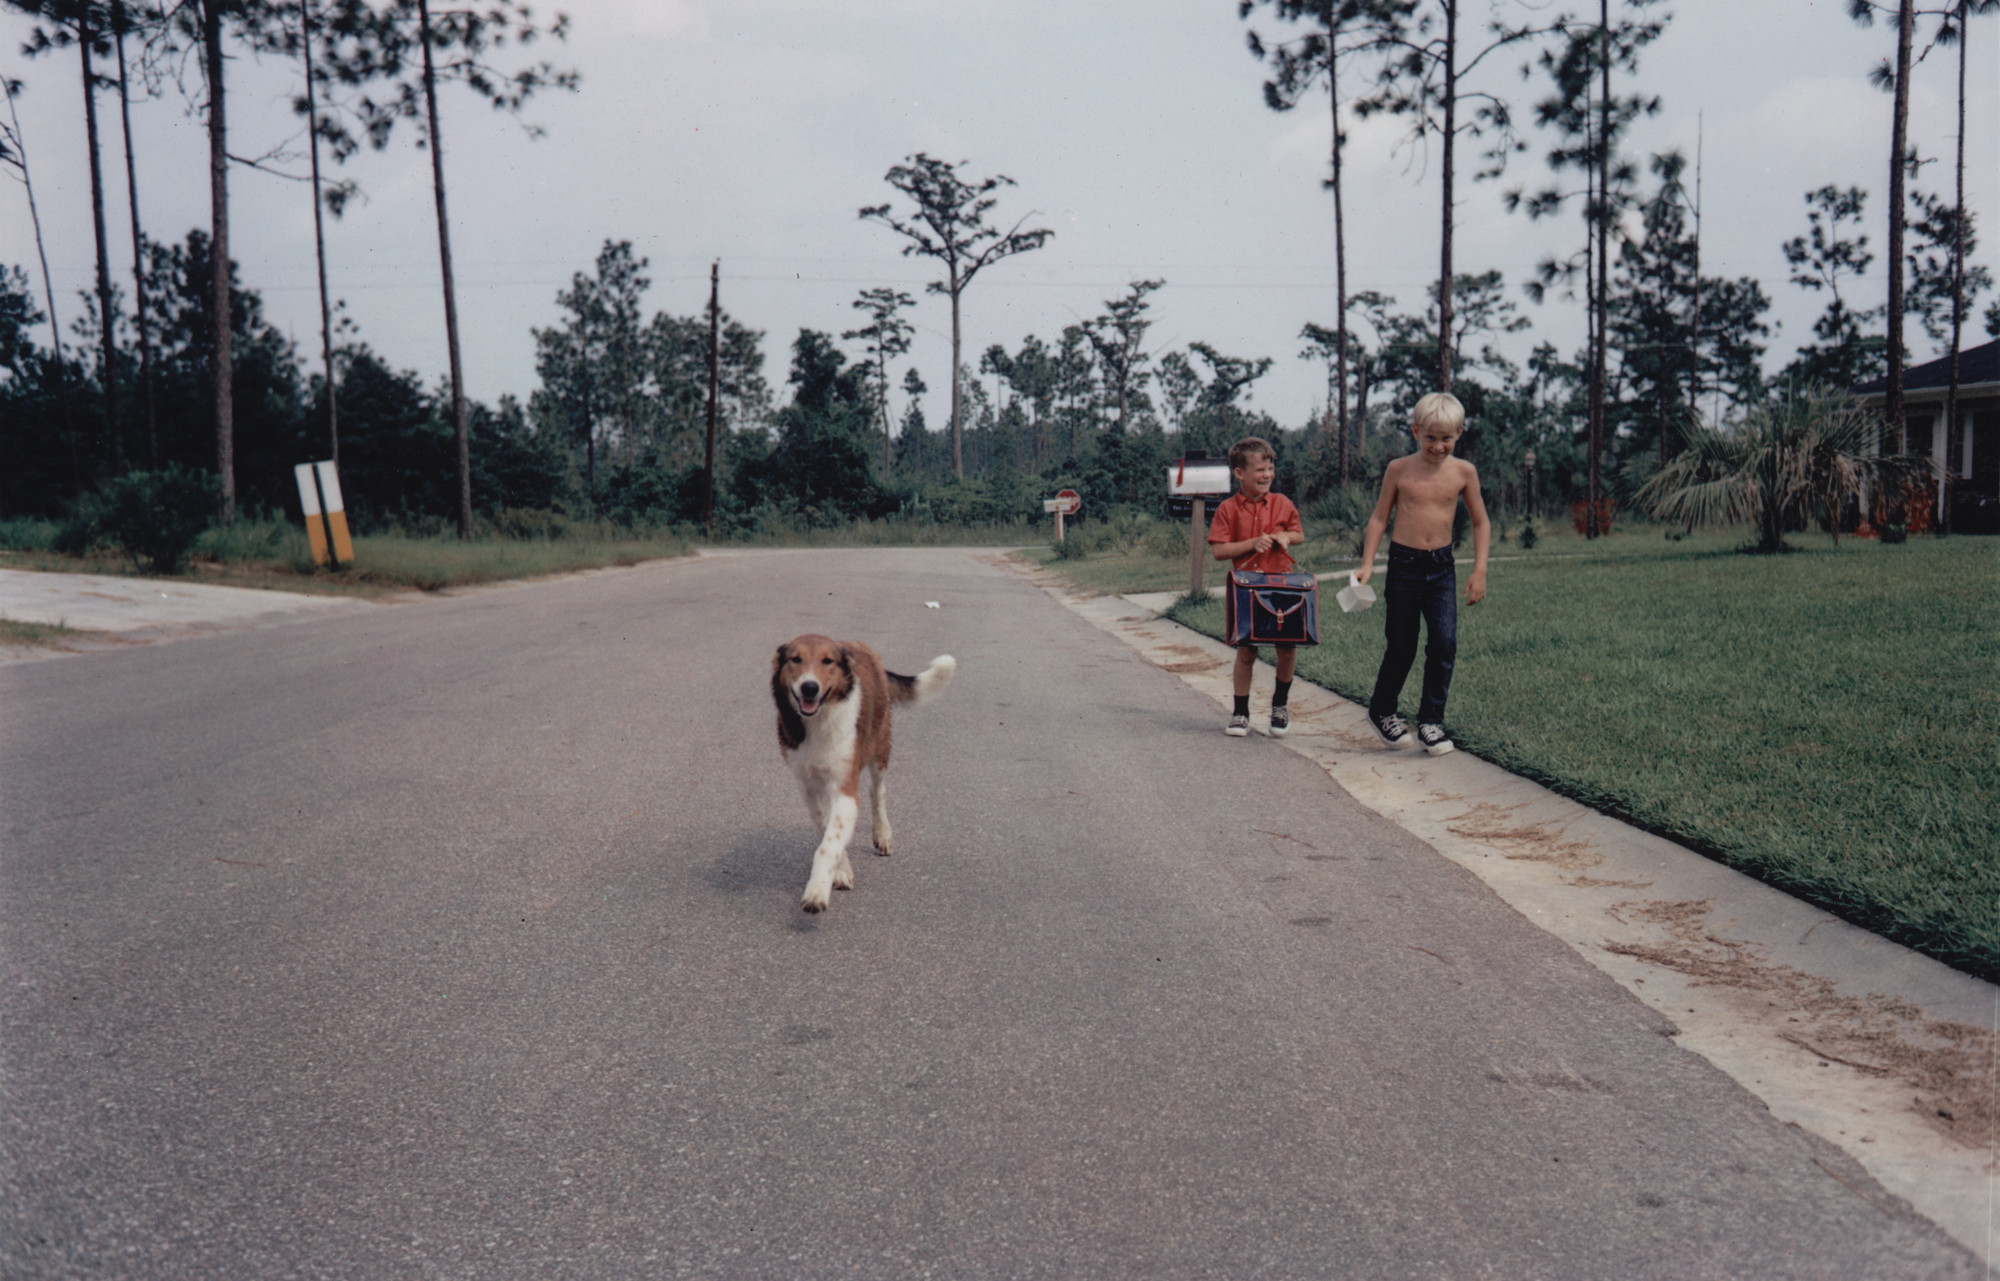 William Eggleston. Gulfport, Mississippi. c. 1969-70